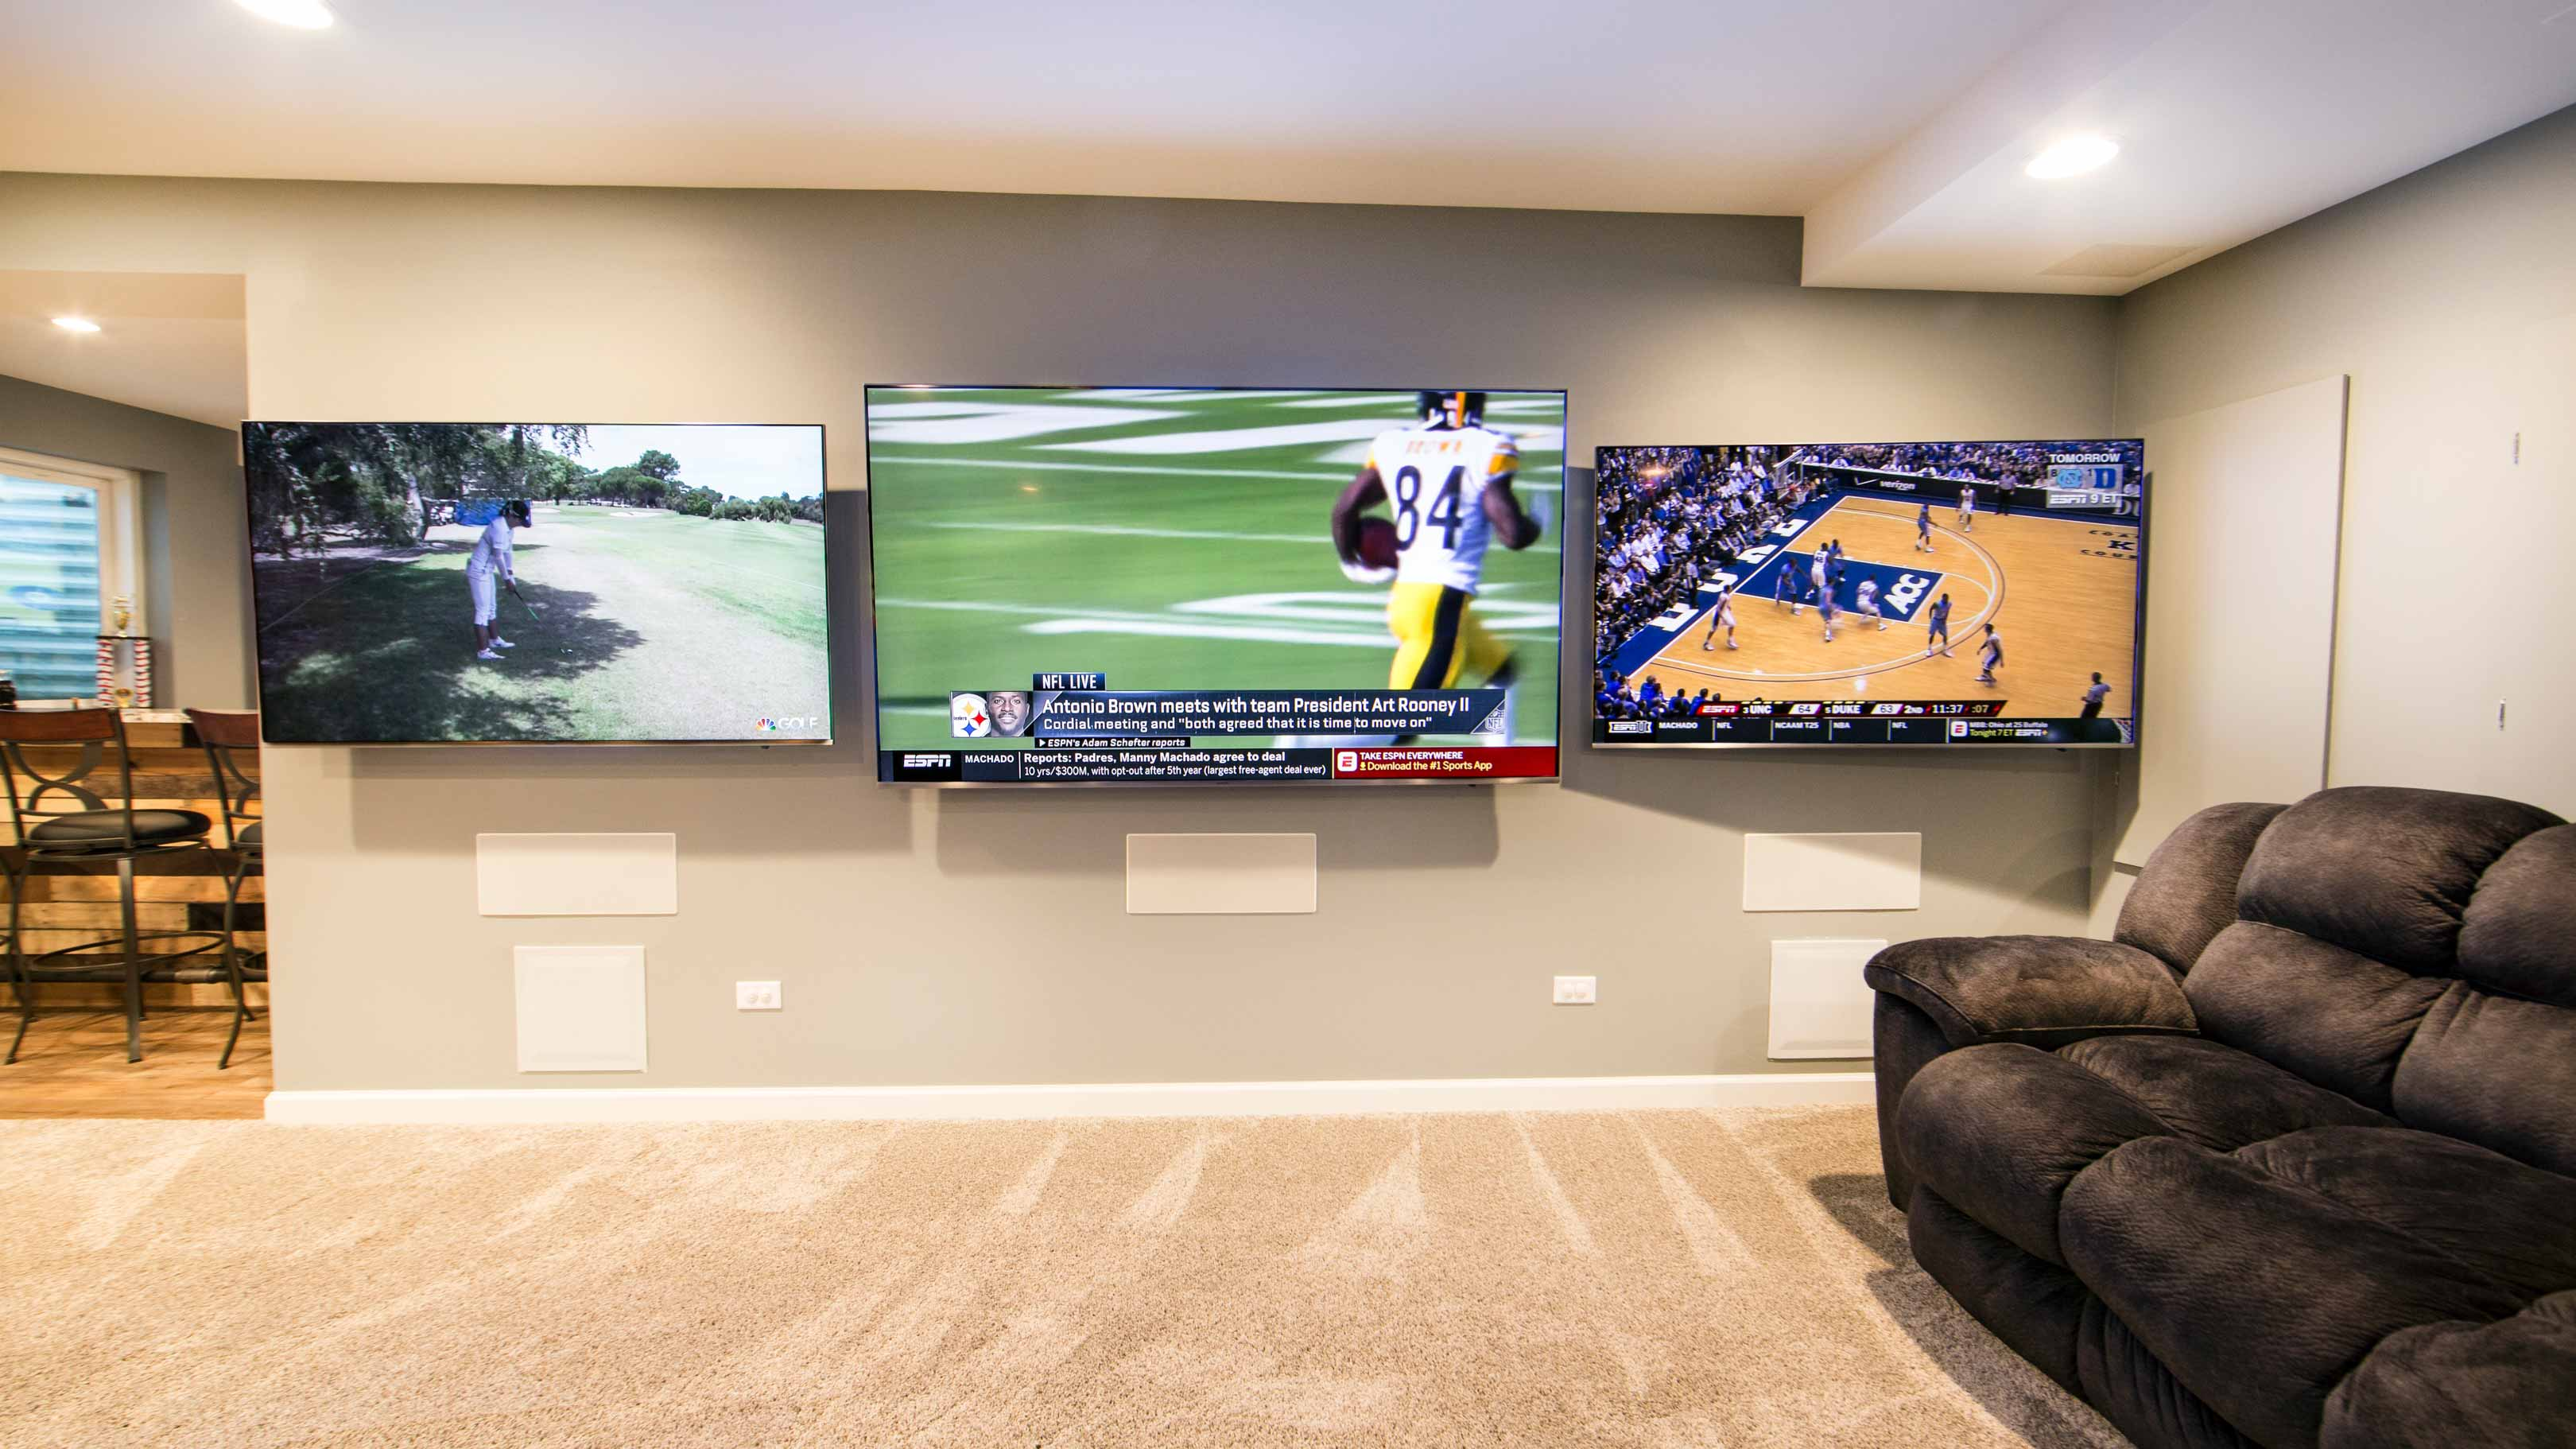 Residential Multi-View Display Wall